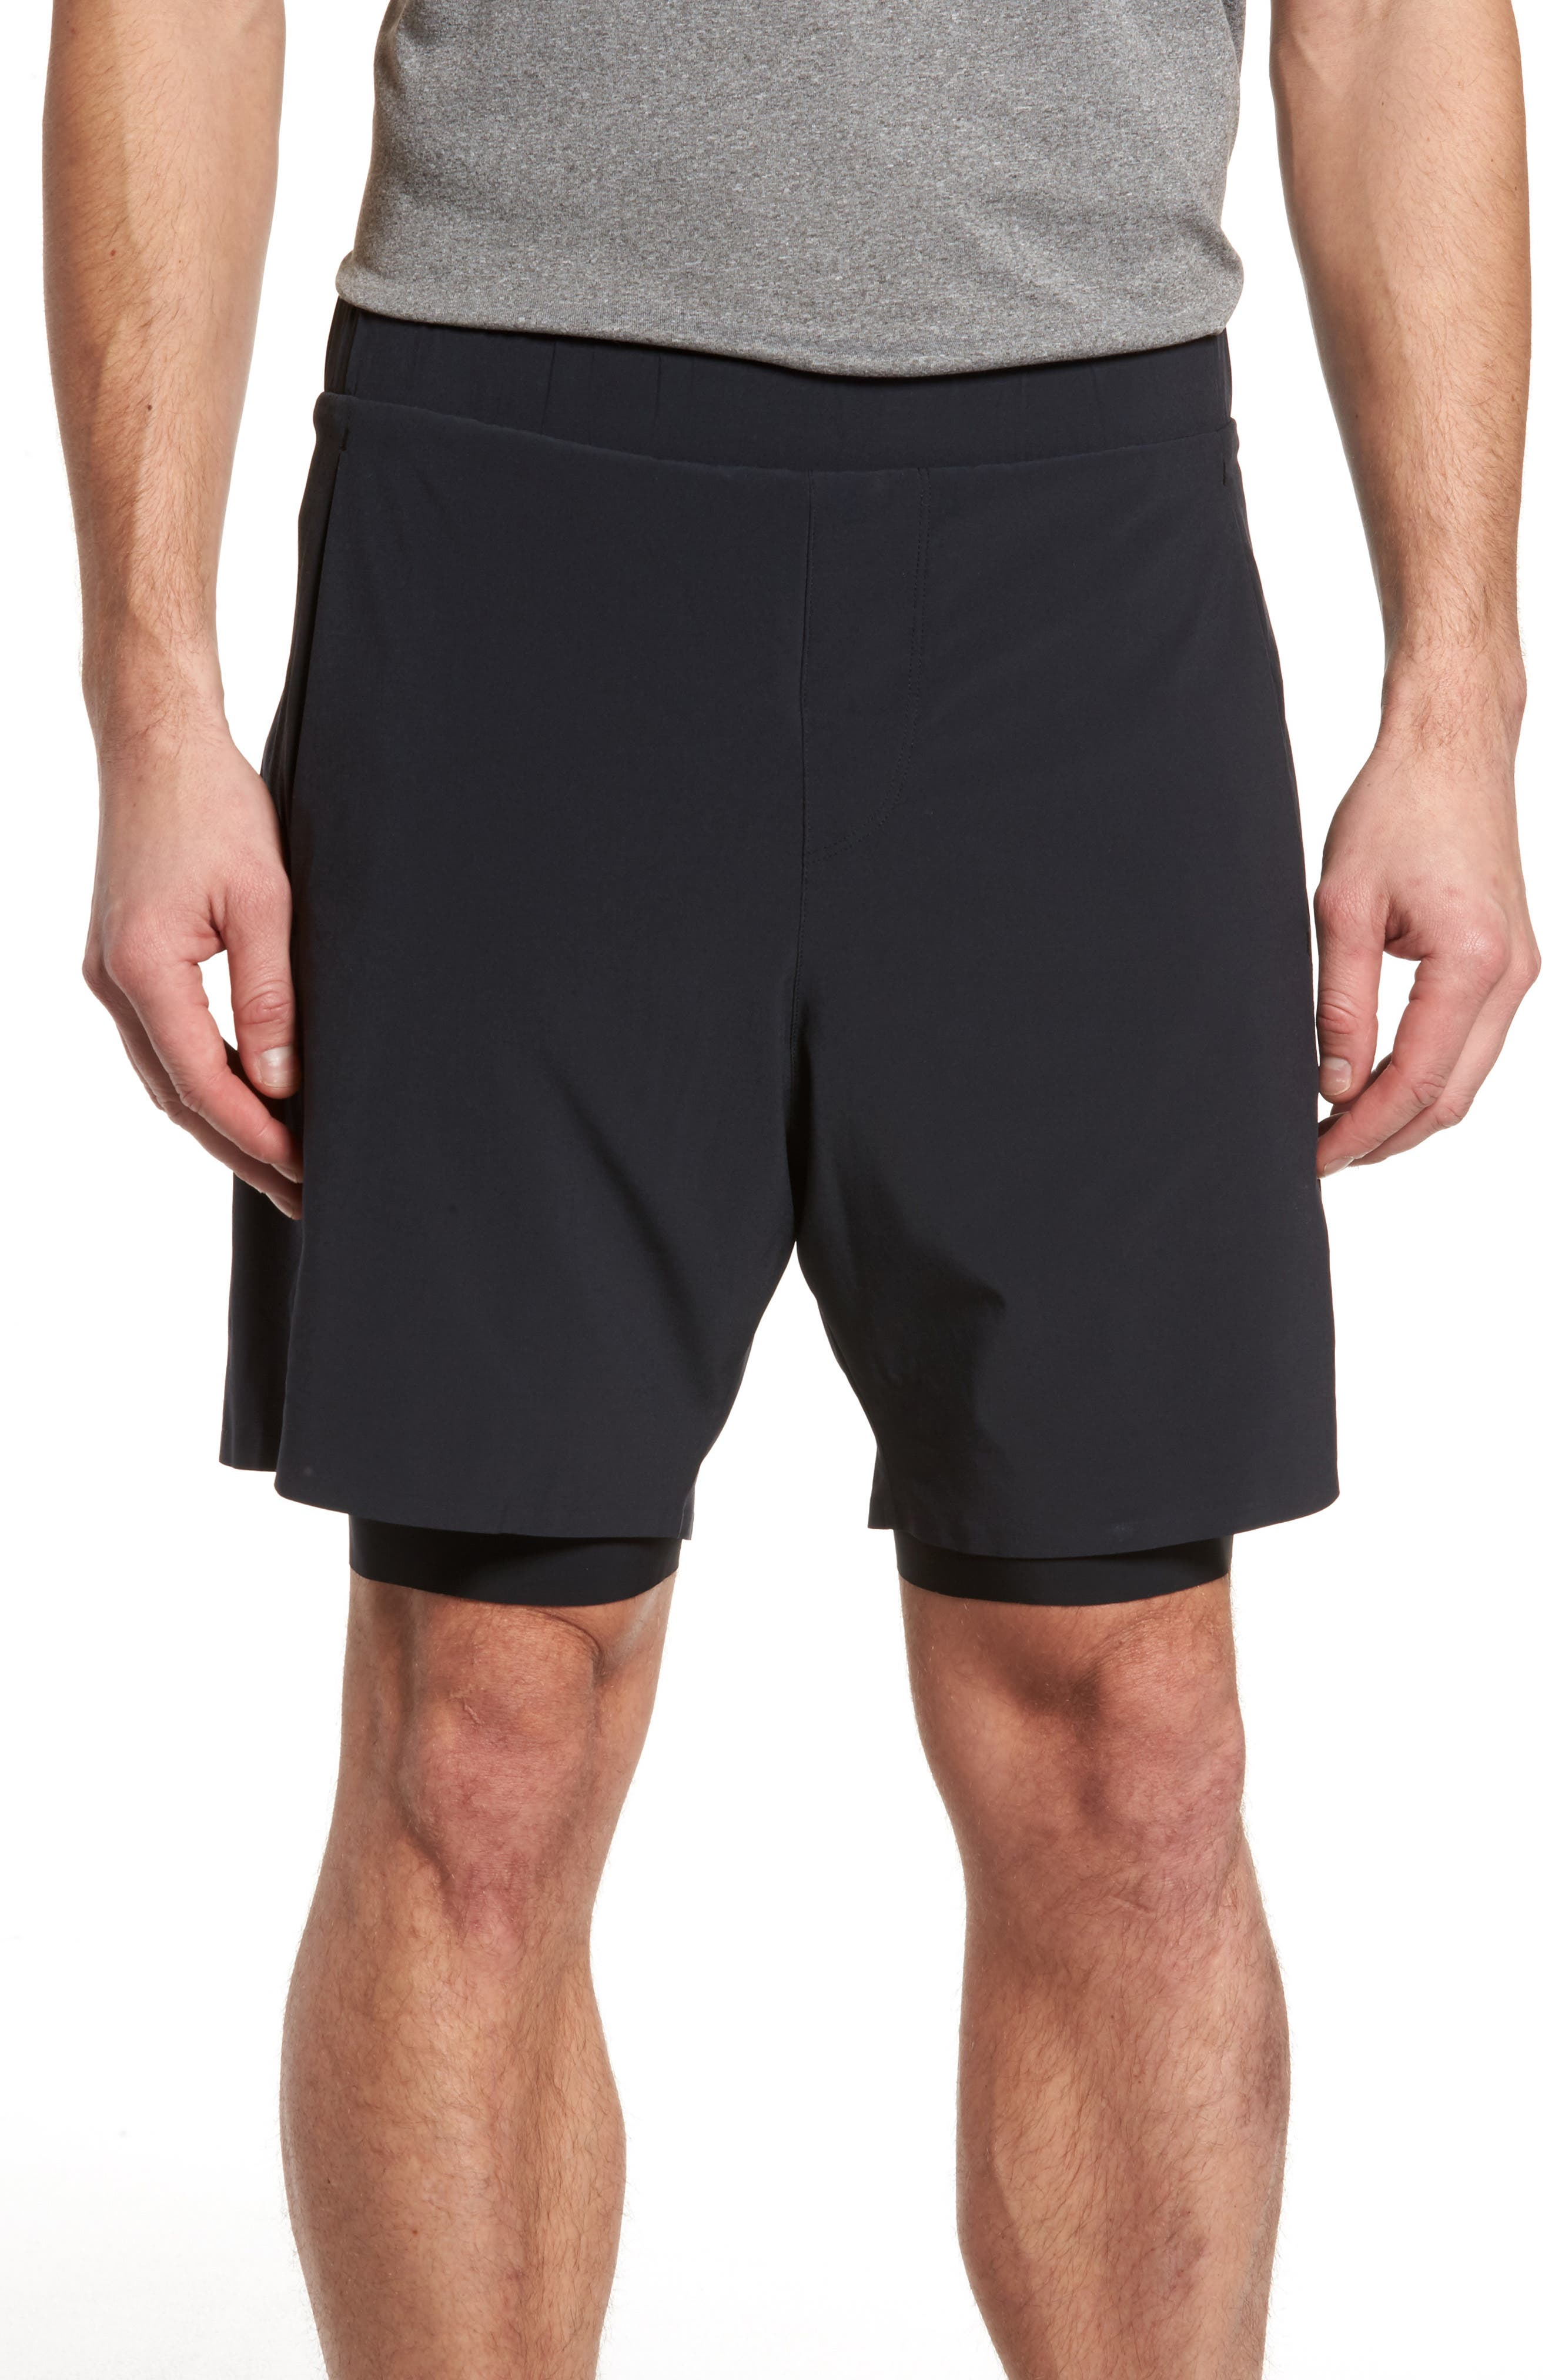 Interval 2-in-1 Shorts,                         Main,                         color, 001